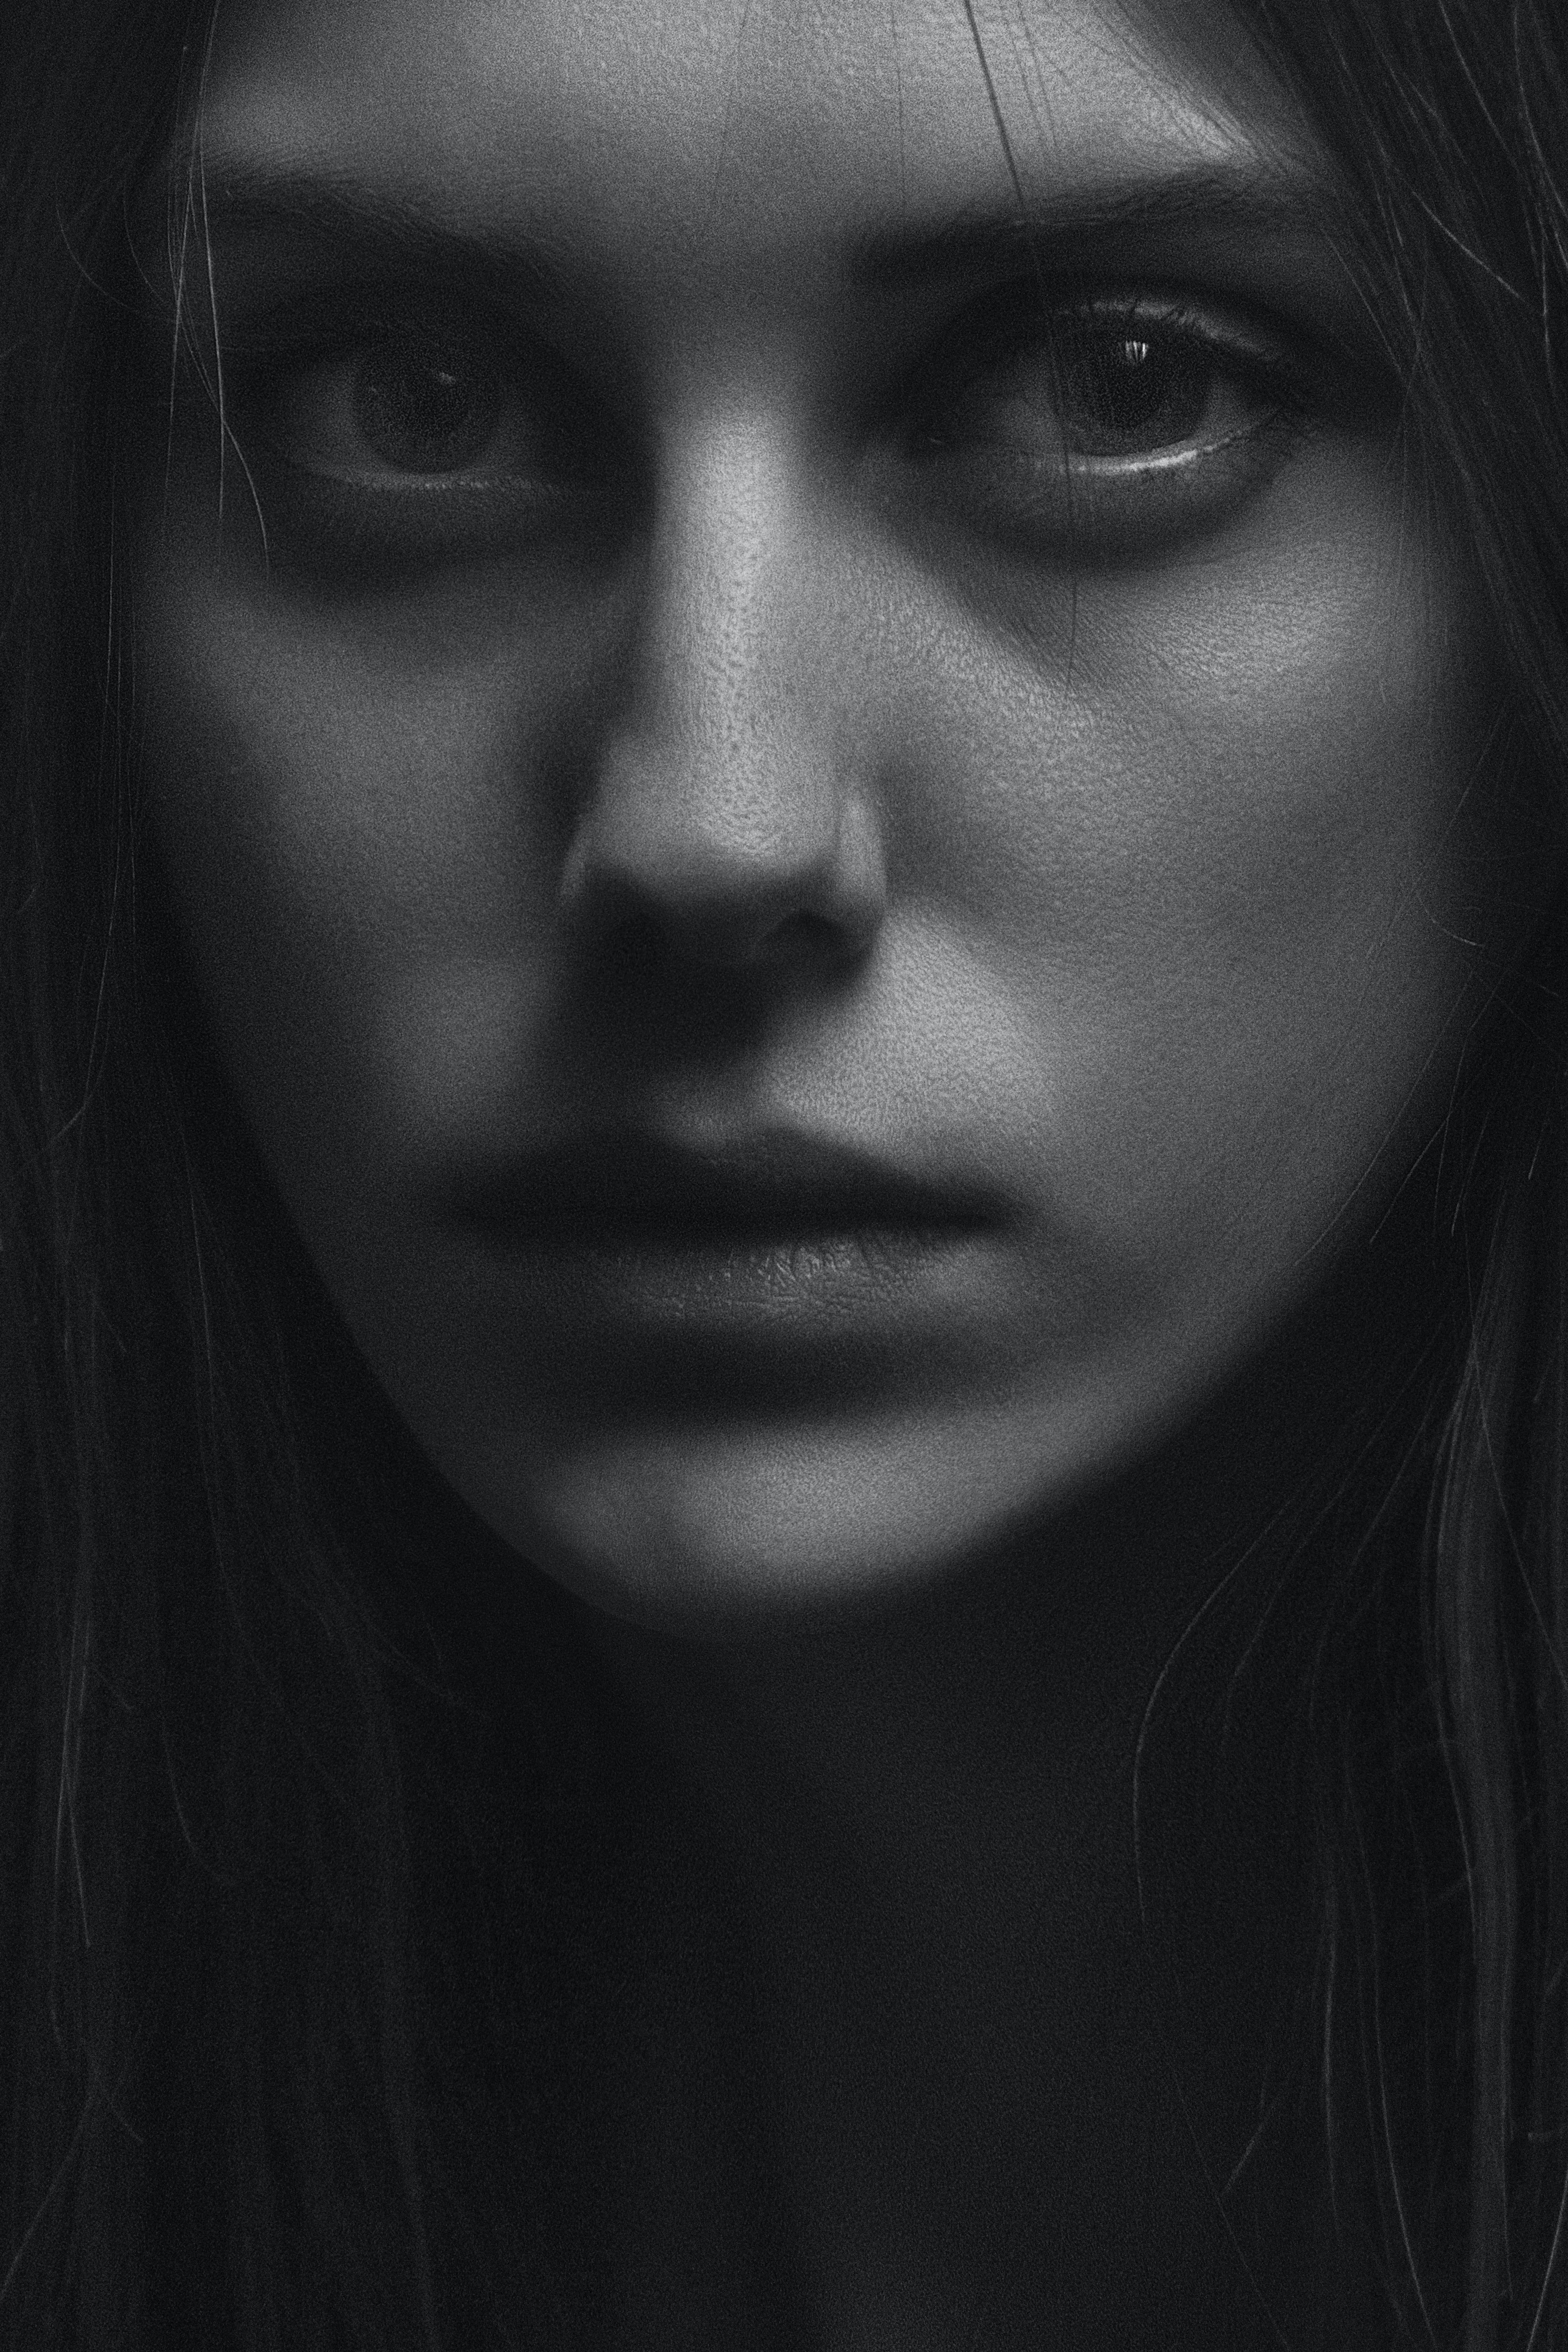 Grayscale Woman Face Photo Free Person Image On Unsplash